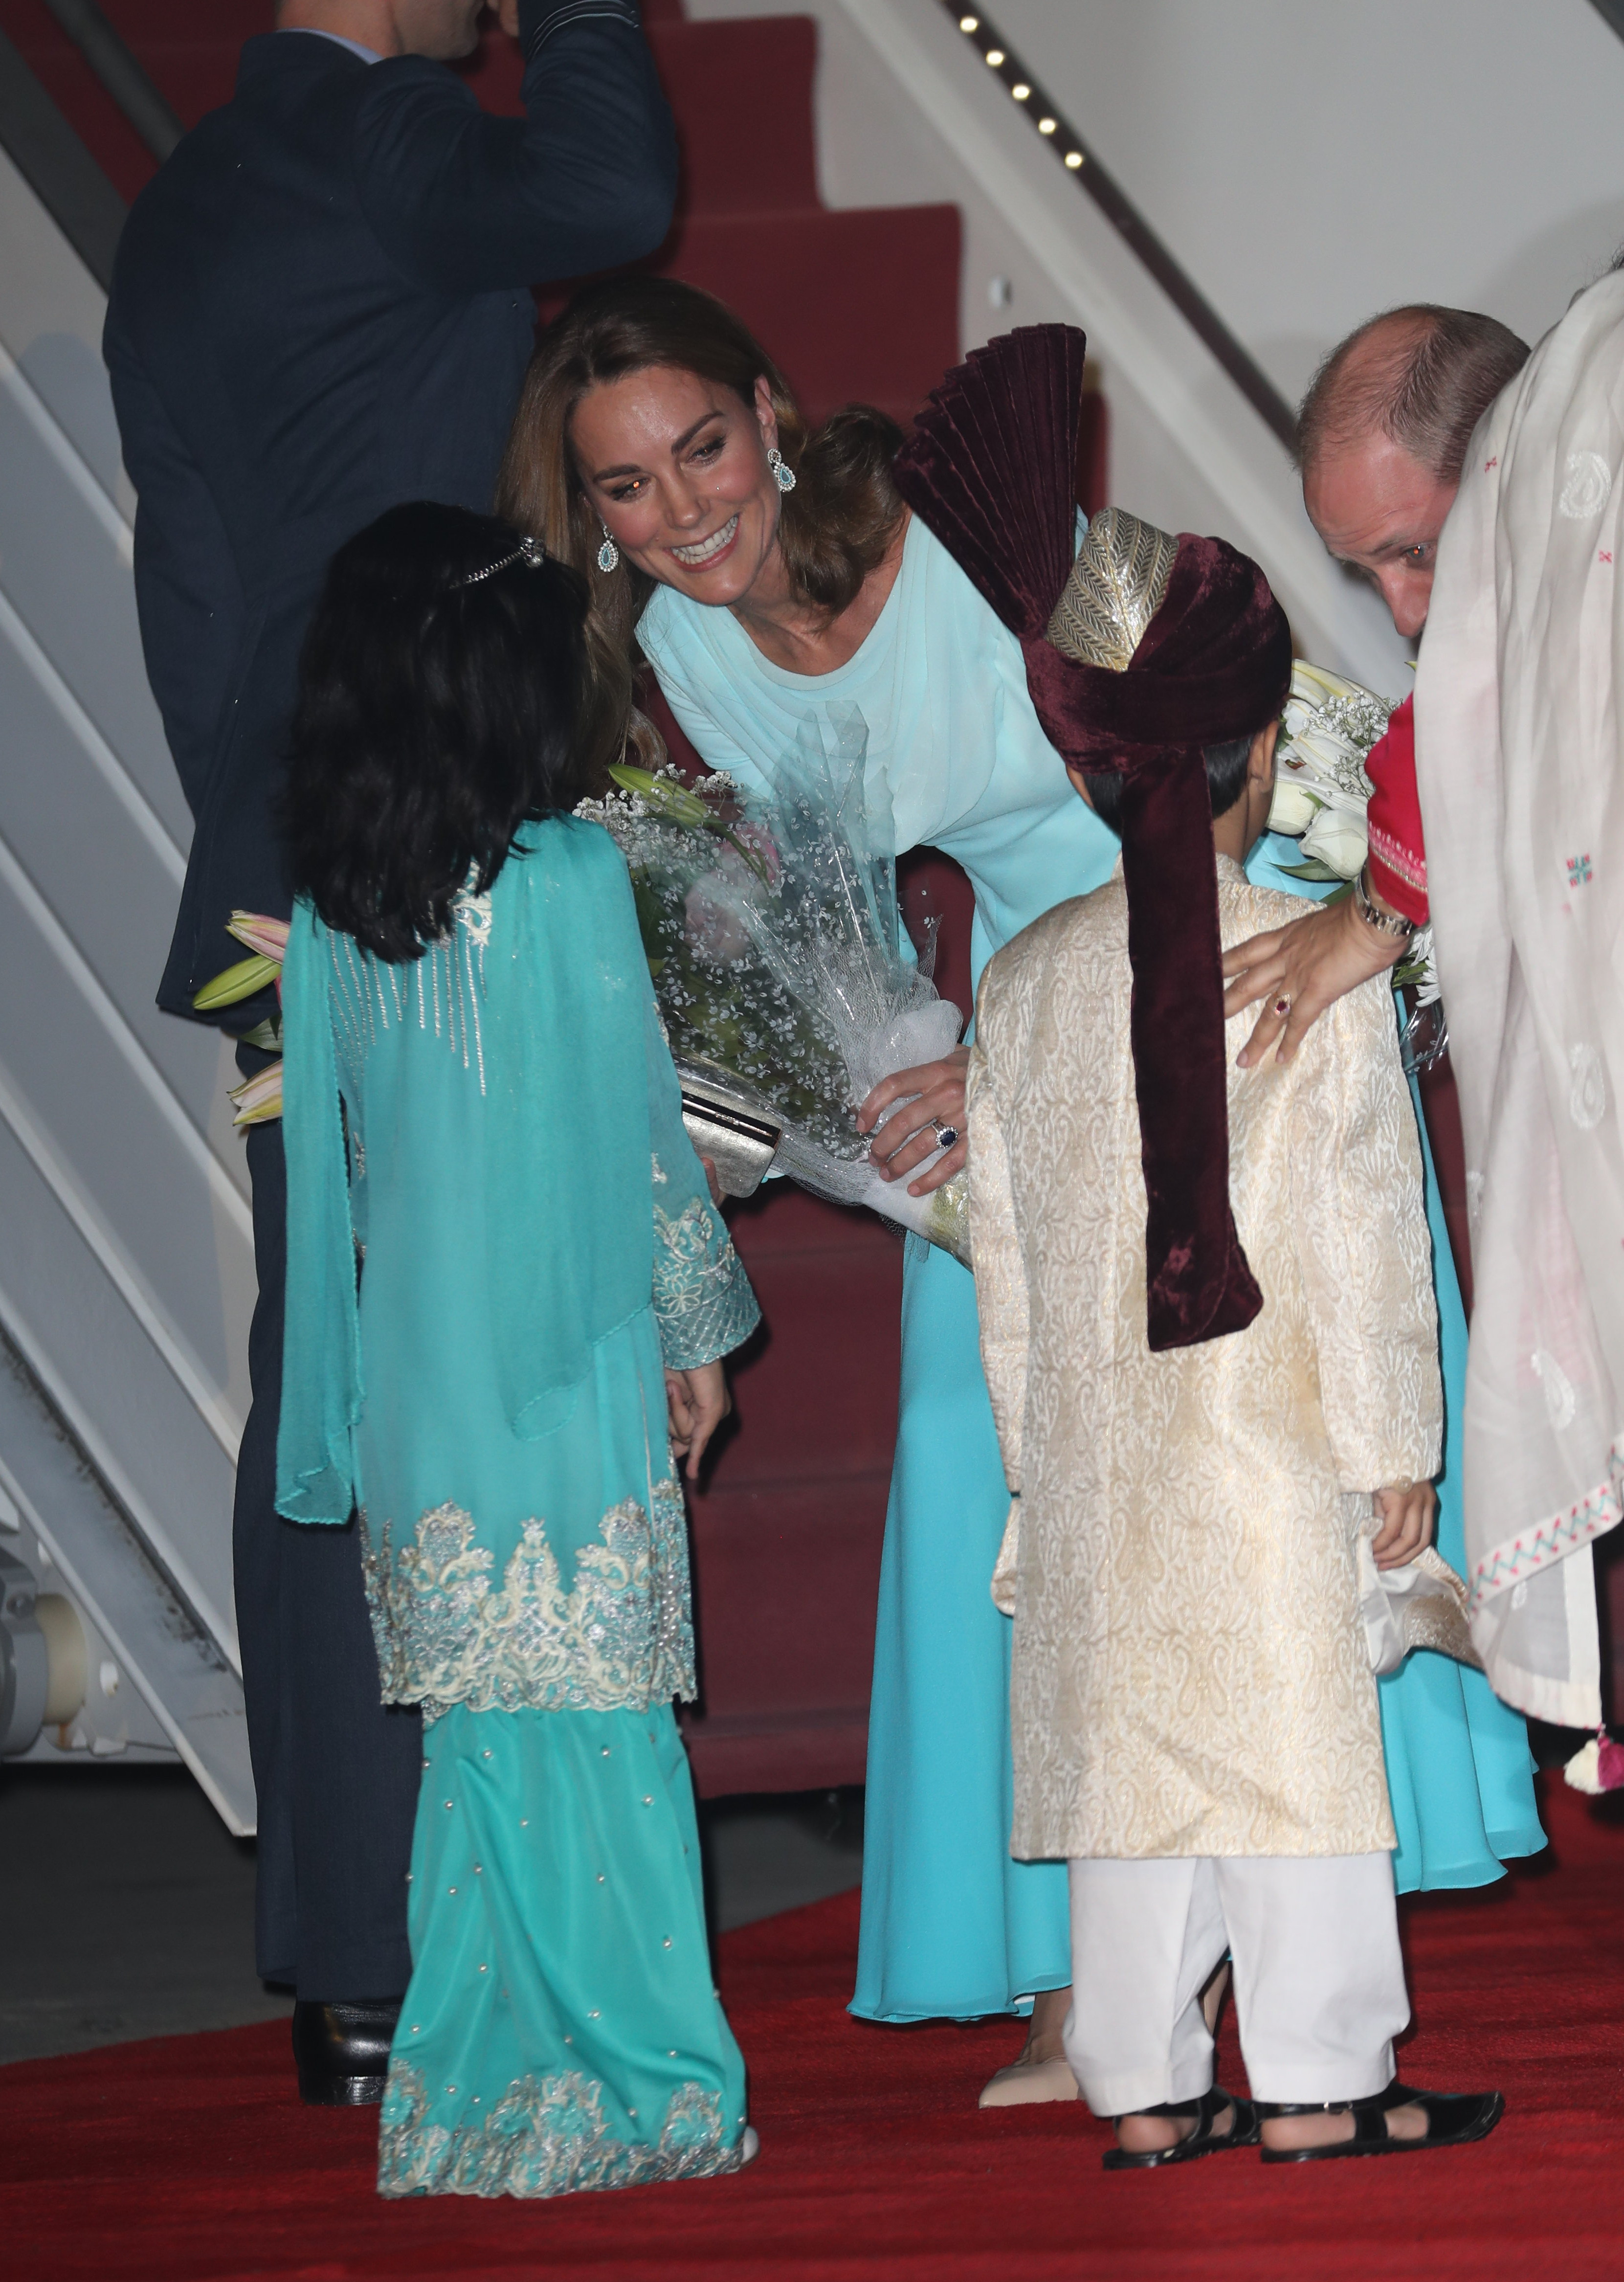 Kate was given flowers by local children in traditional dress